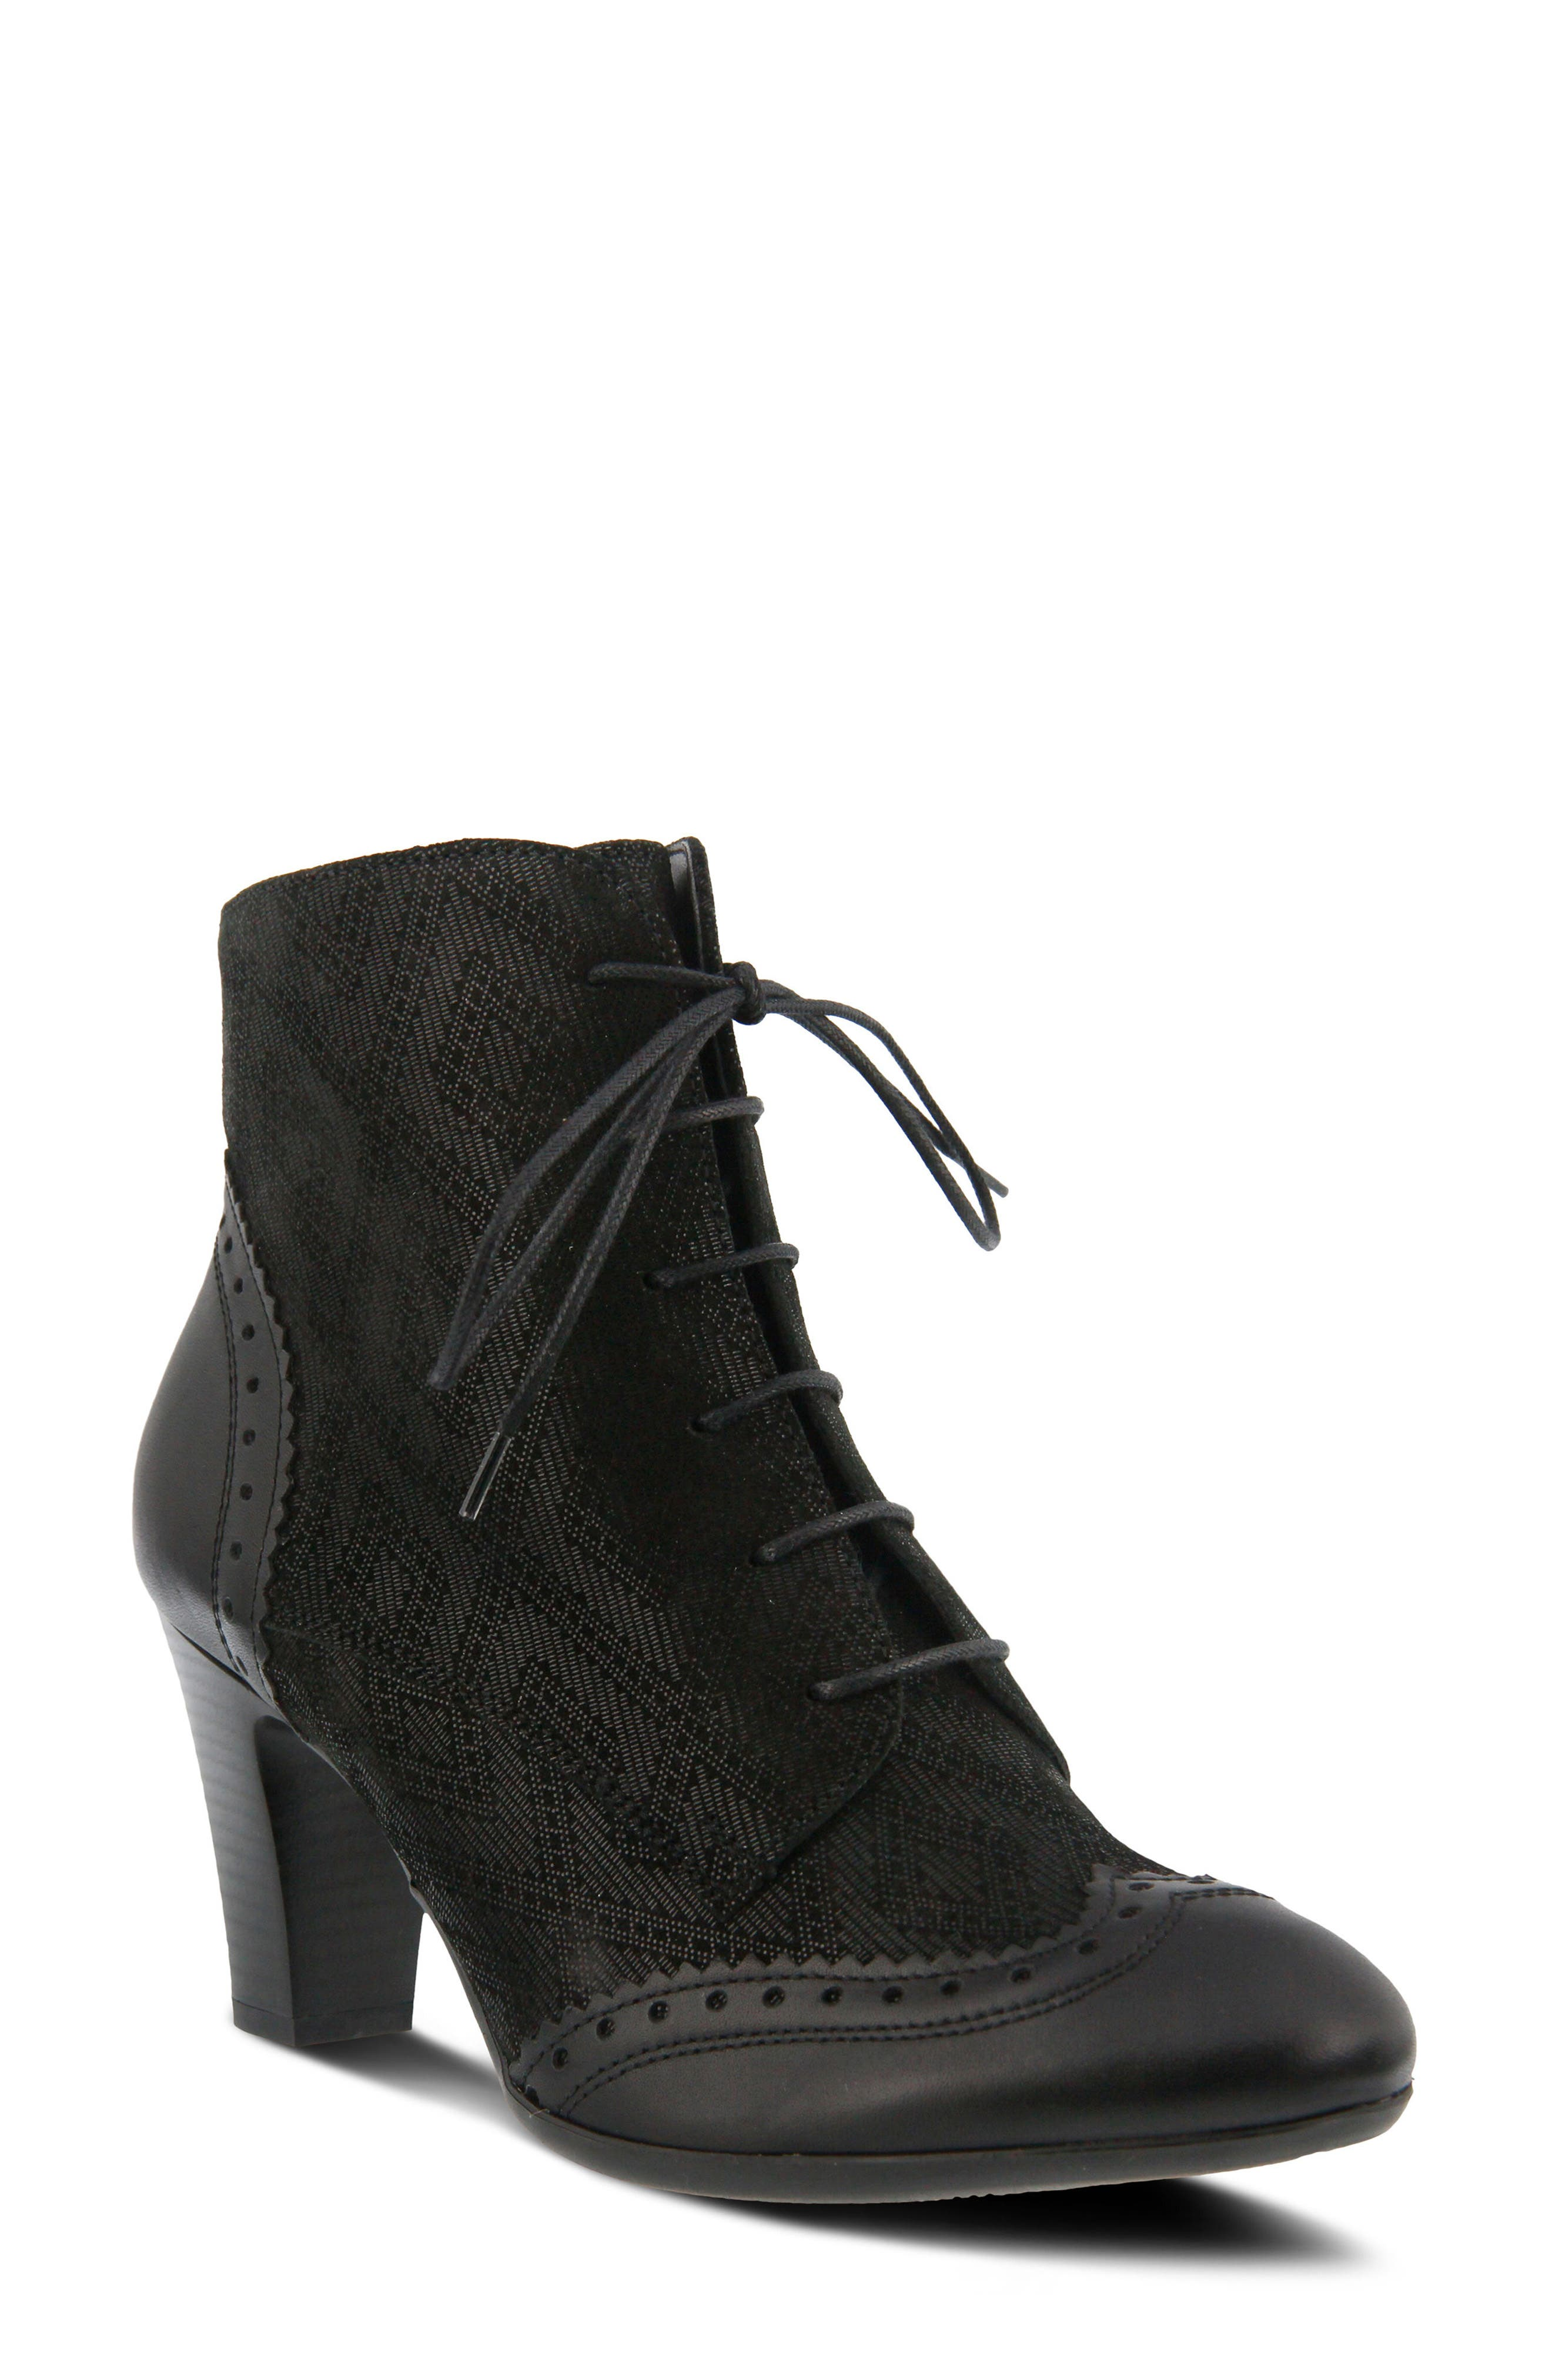 Main Image - Spring Step Gem Lace-Up Bootie (Women)